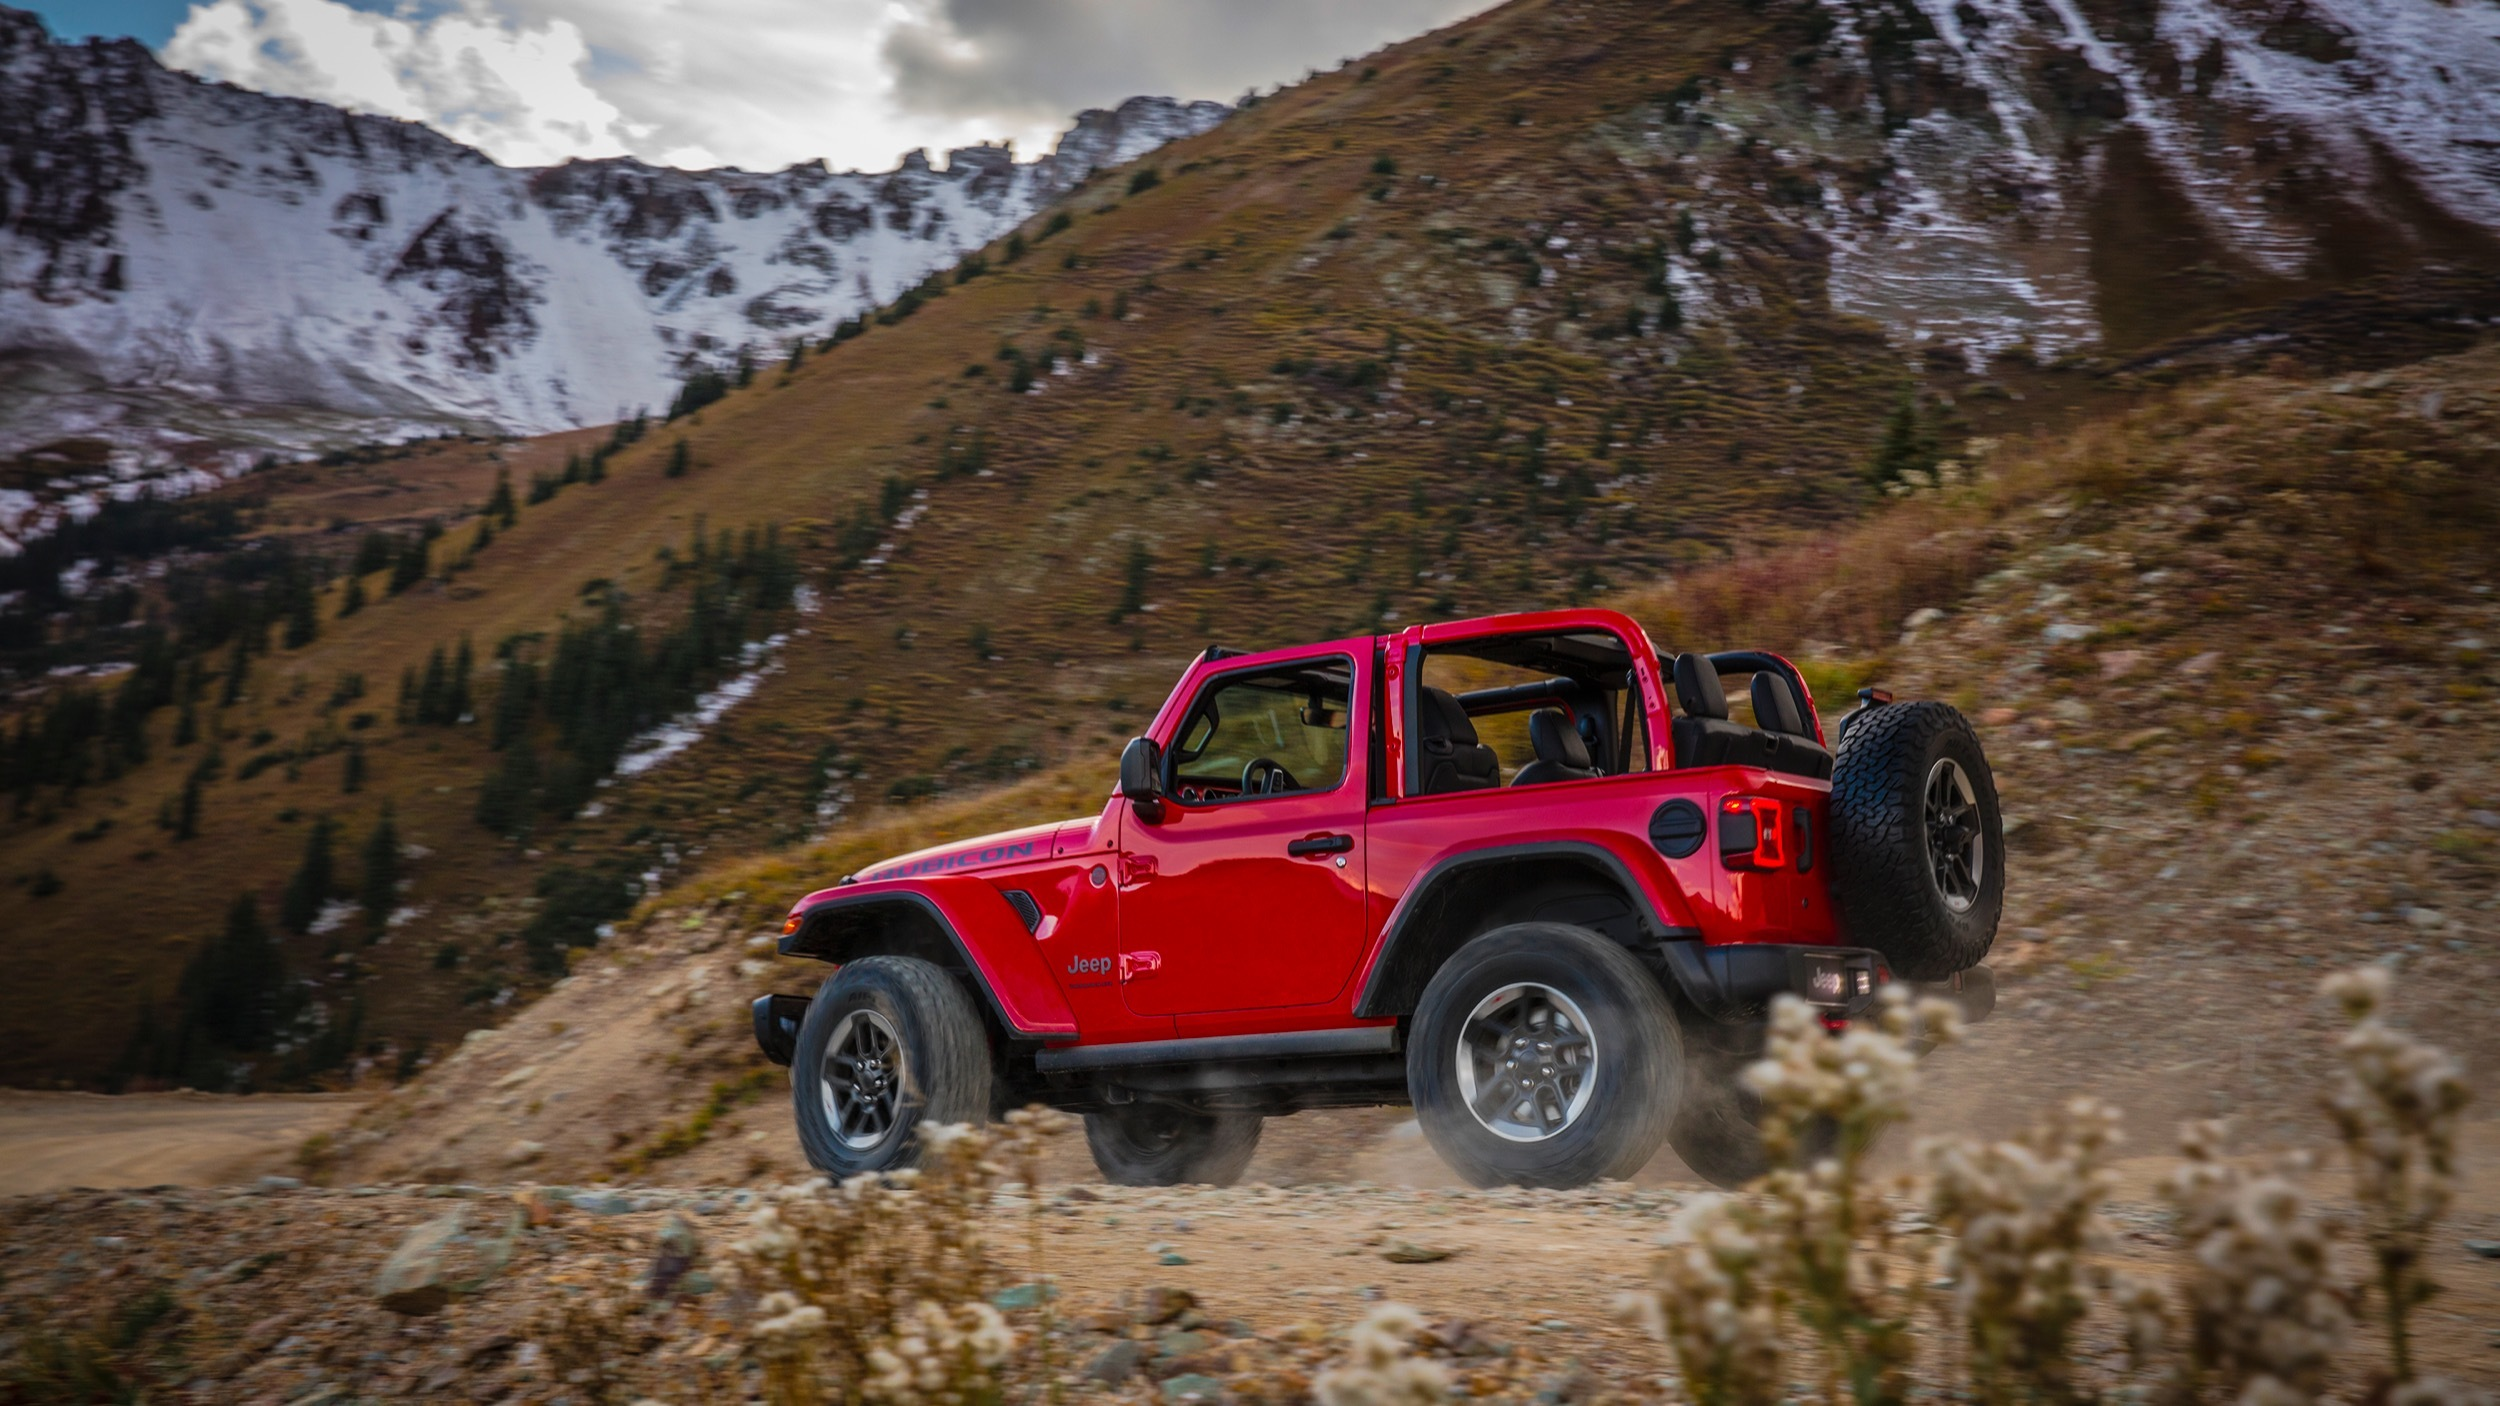 Jeep Wrangler plug-in hybrid confirmed for 2020 | Autoblog